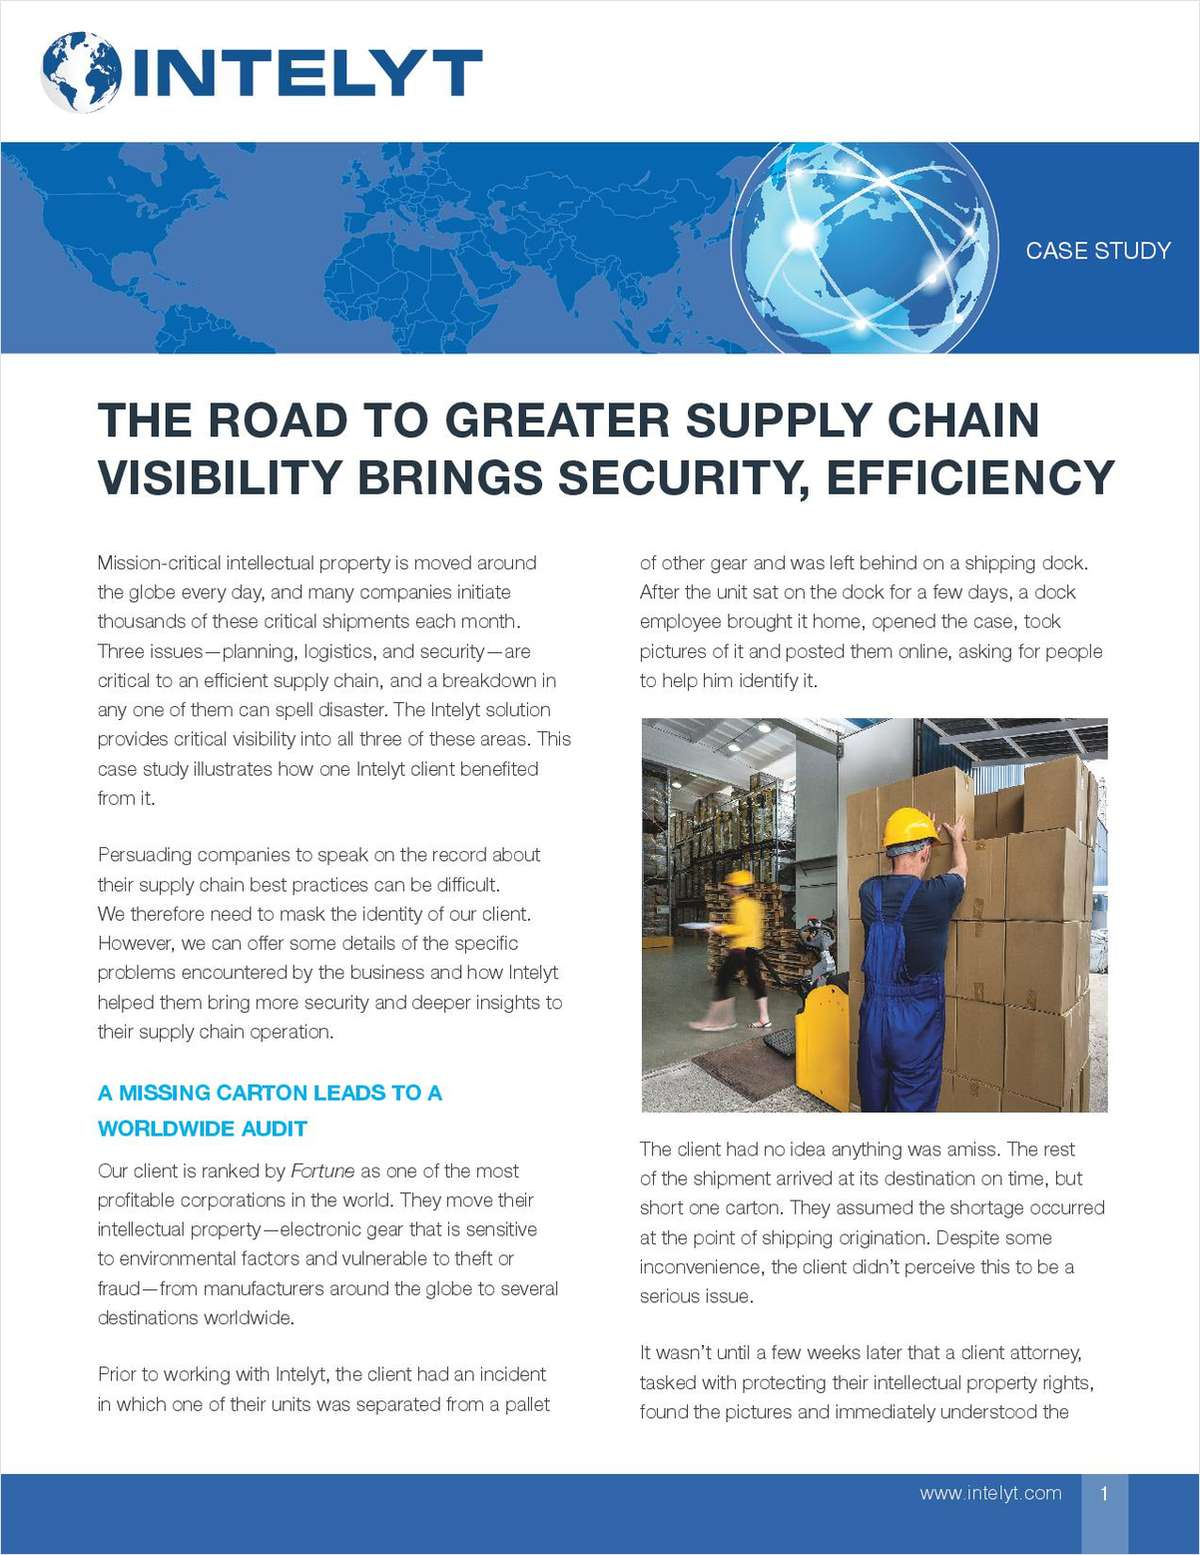 The Road To Greater Supply Chain Visibility Brings Security, Efficiency